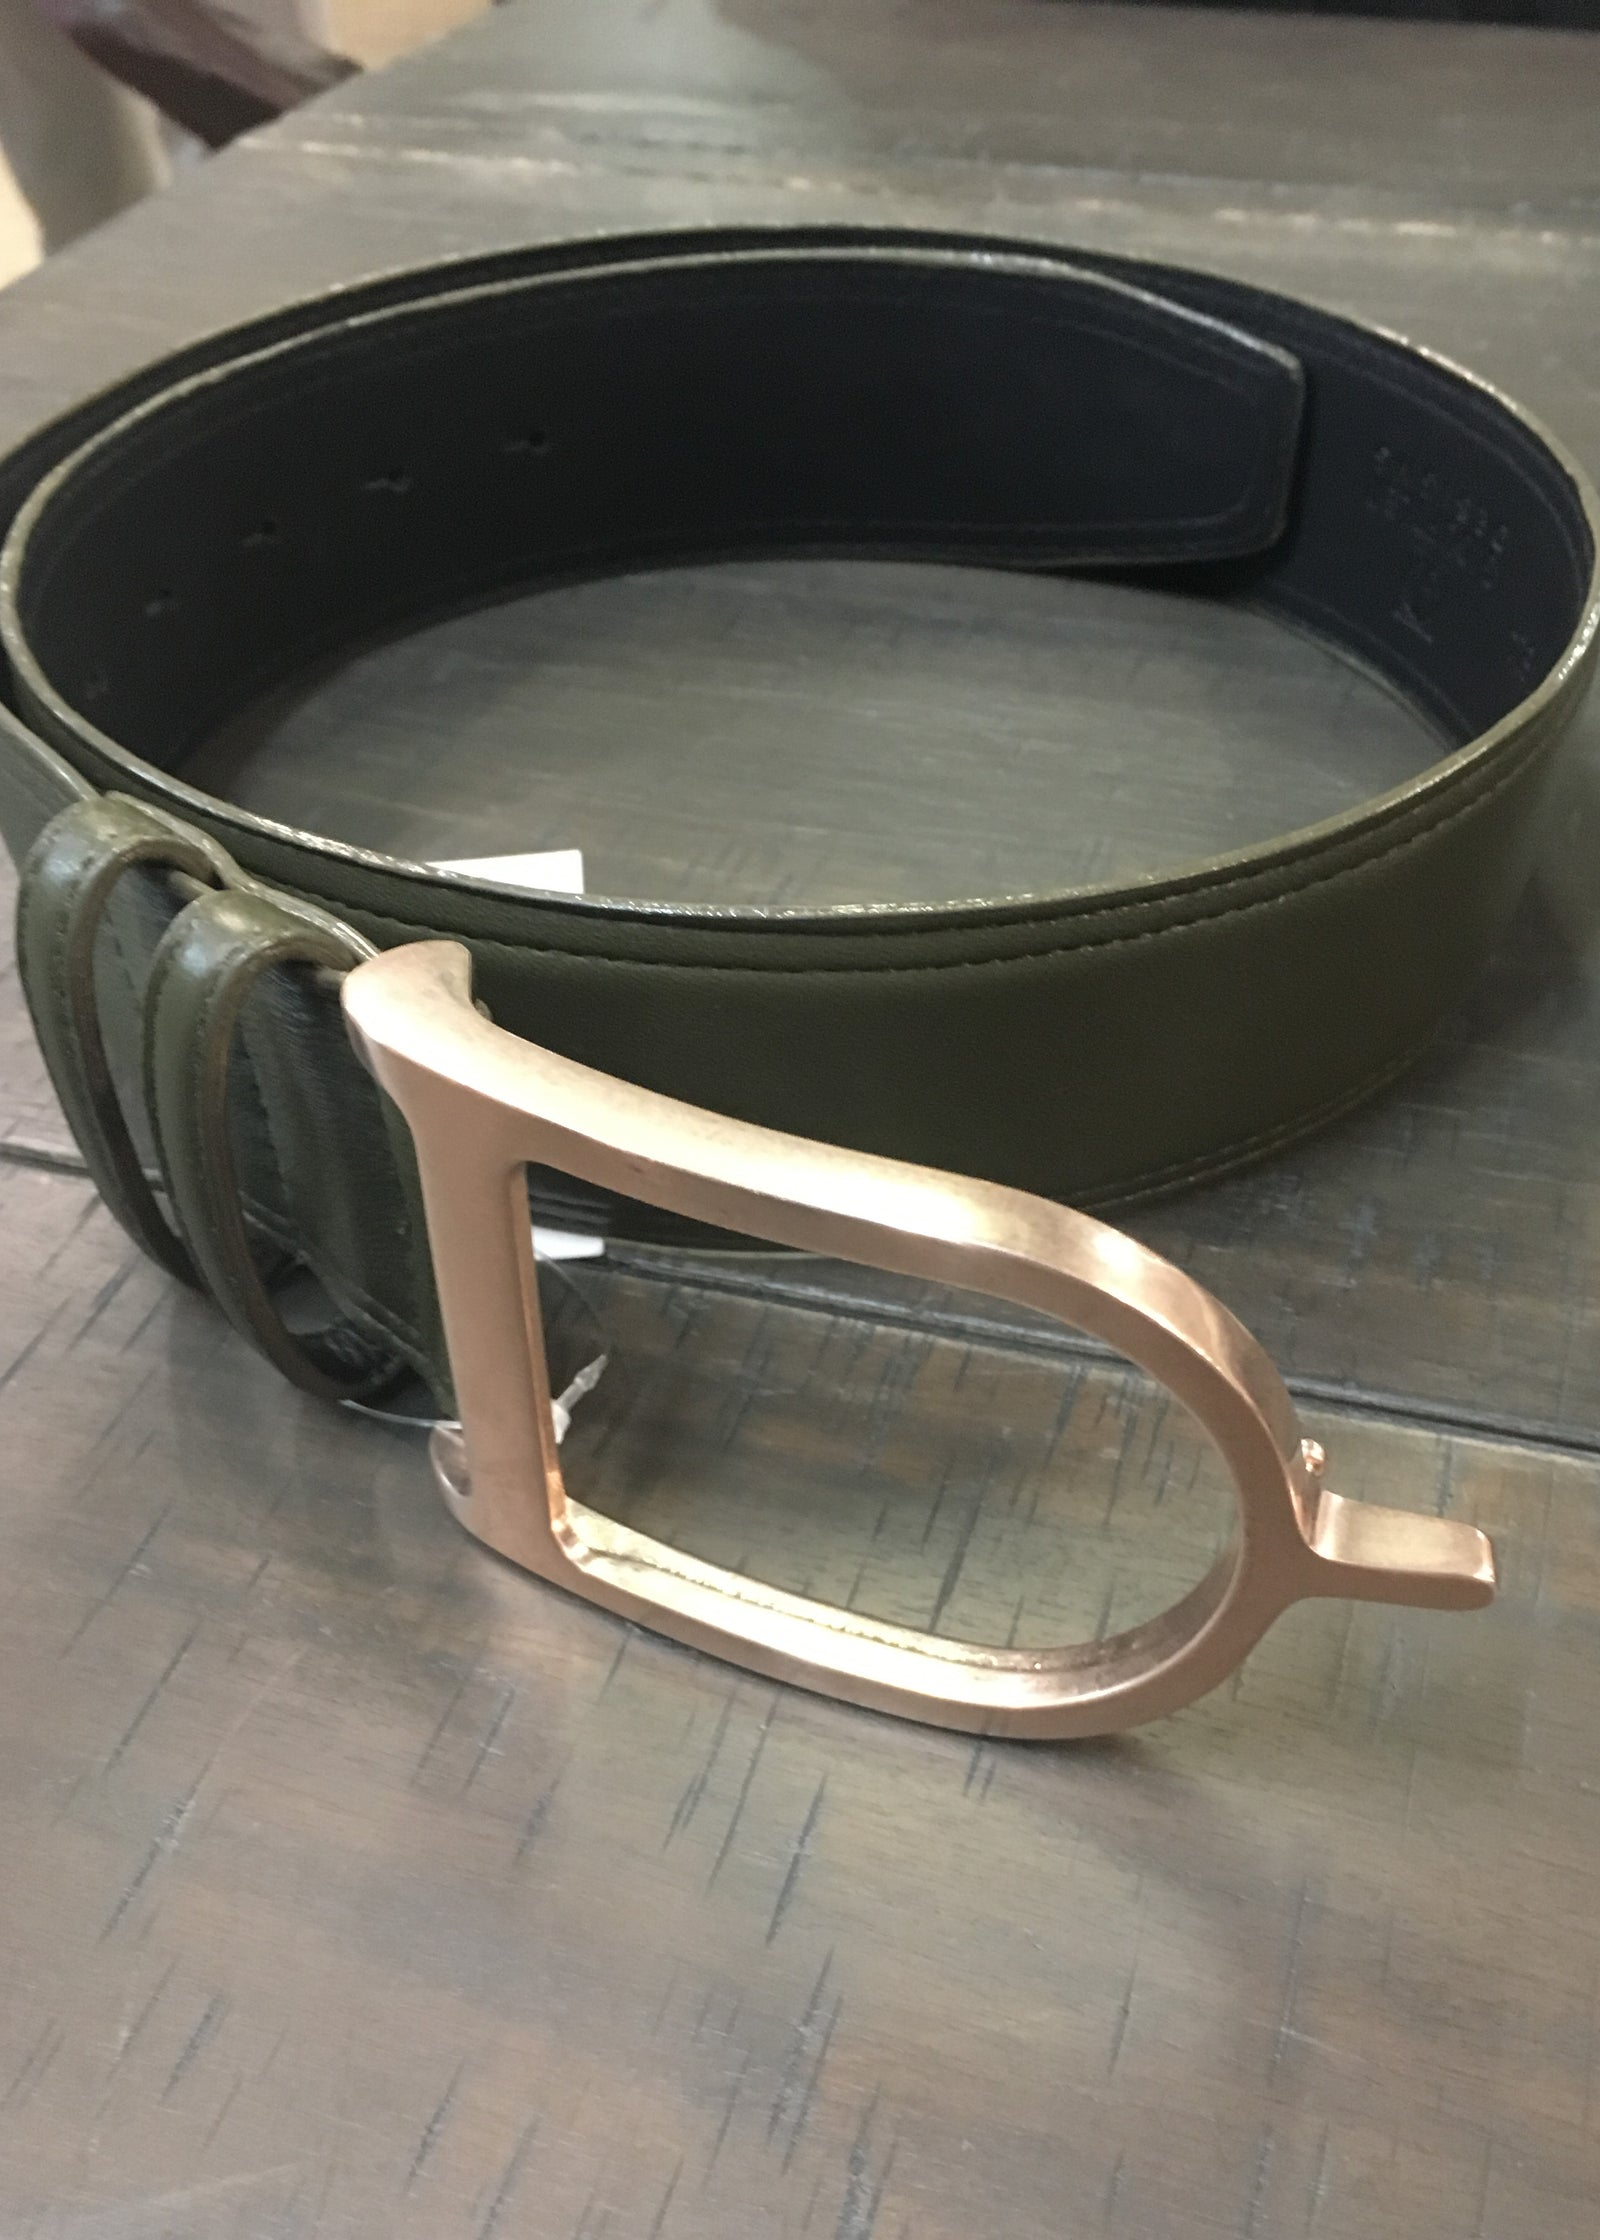 Duftler Spur Belt Rose Gold Buckle Olive Lamb - Luxe EQ